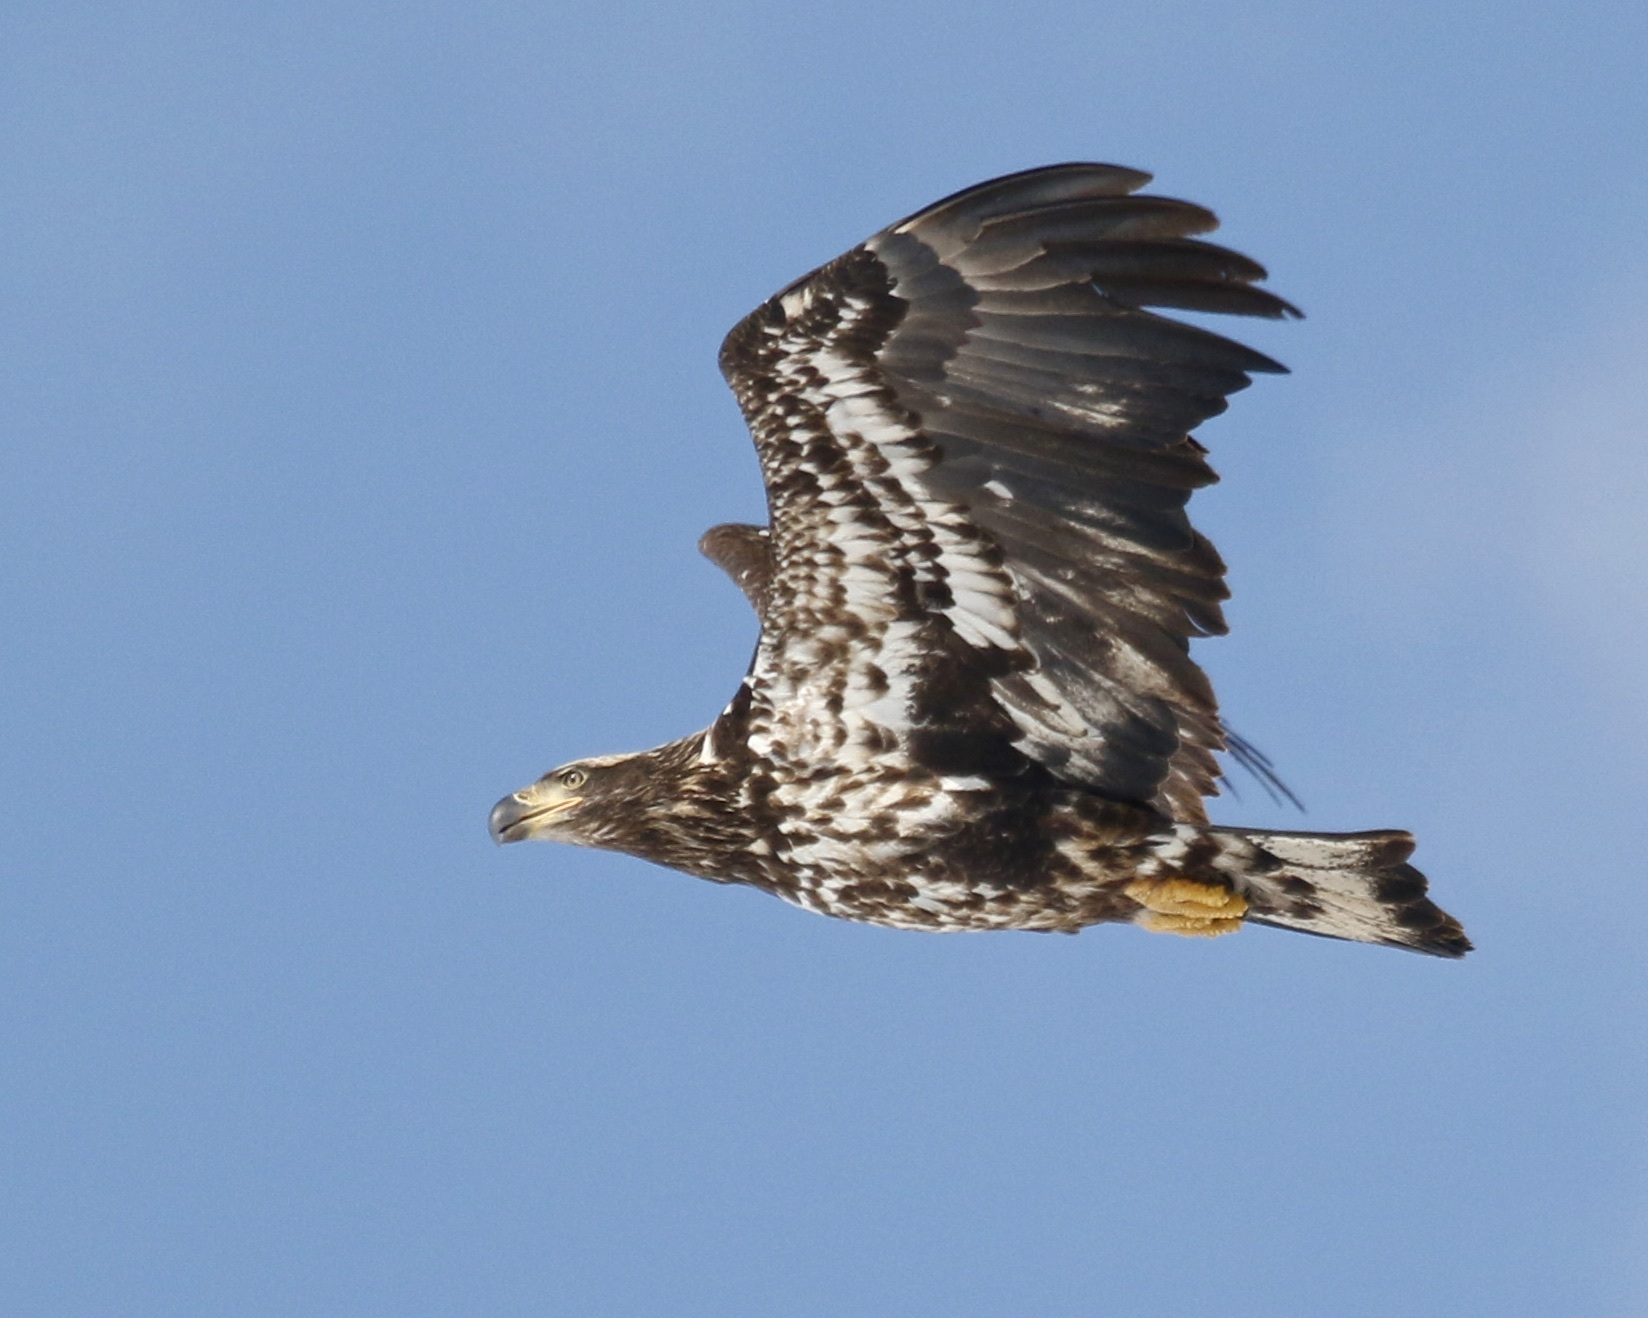 One more shot of the immature Bald Eagle that flew over me at Croton Point Park. I like the nice blue background in this photo, but the bird is soft.